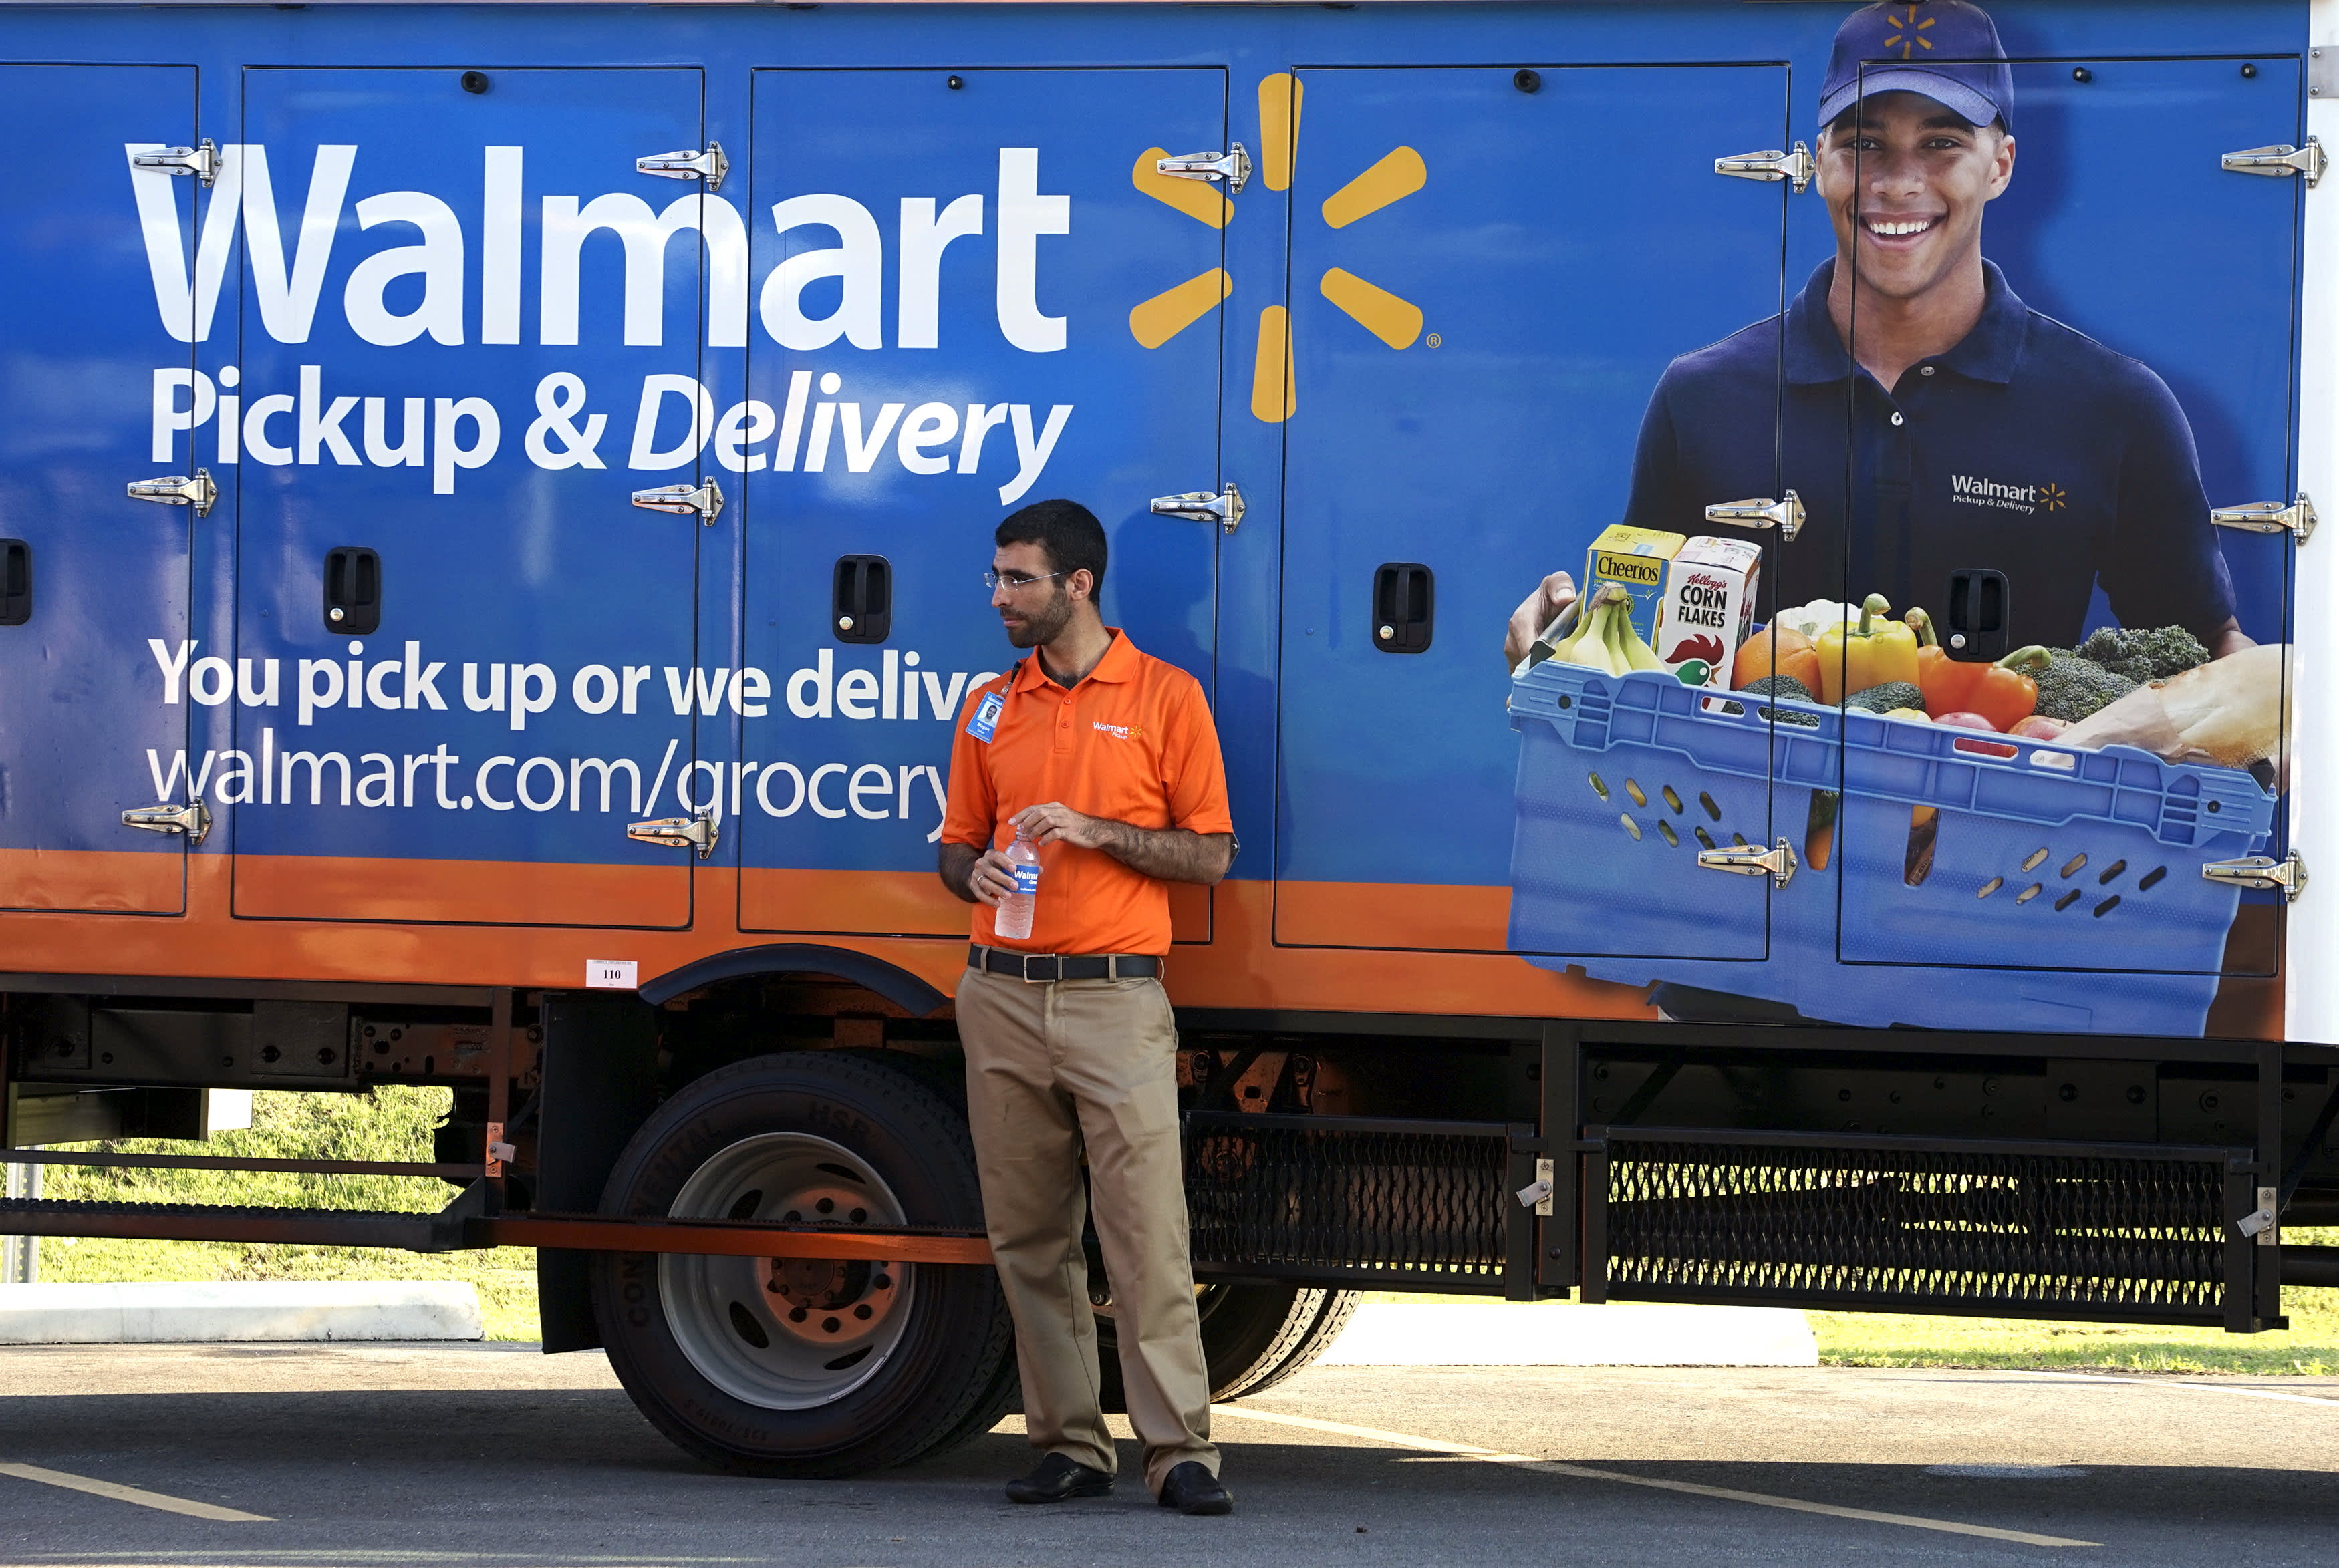 Wal Mart Calls For 40 Percent E Commerce Sales Growth In Fiscal 2019